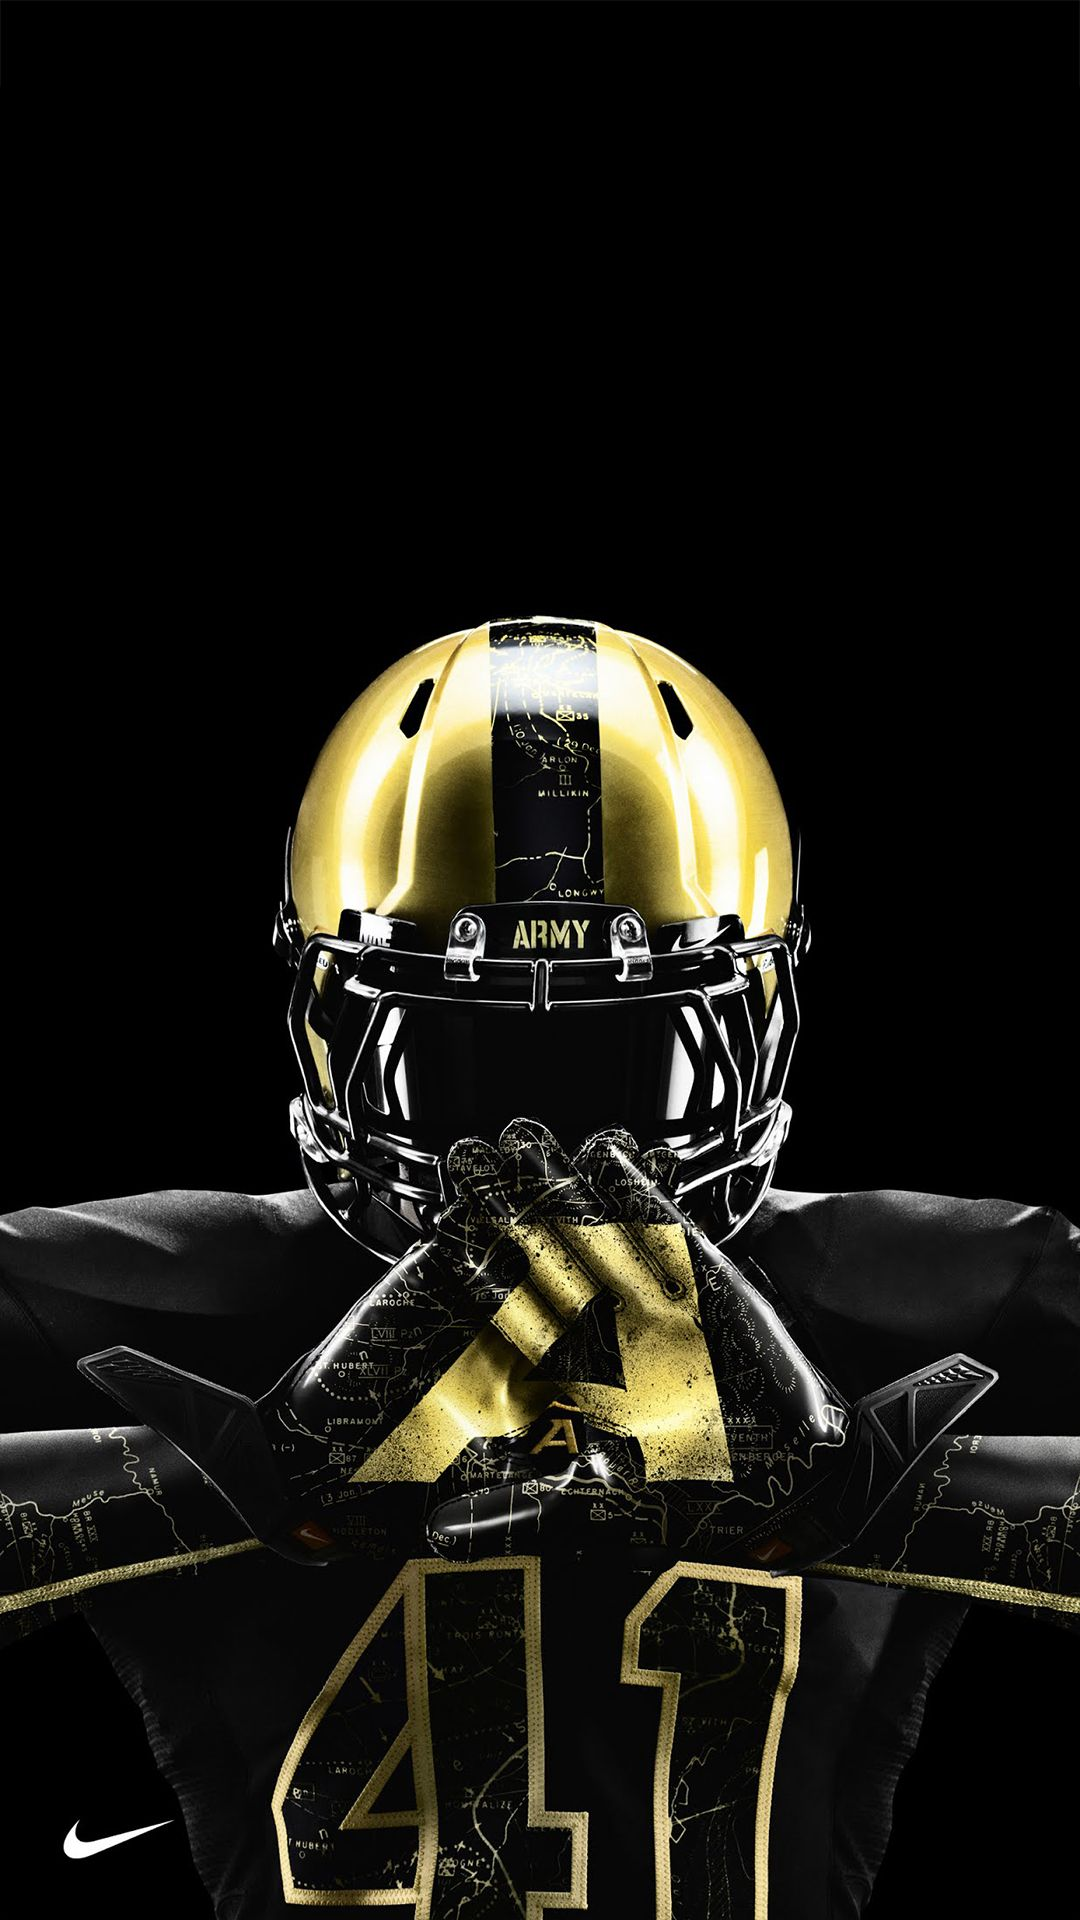 Nike Logo Htc One Wallpaper Best Htc One Wallpapers Football Wallpaper Iphone Army Black Knights Football Football Wallpaper